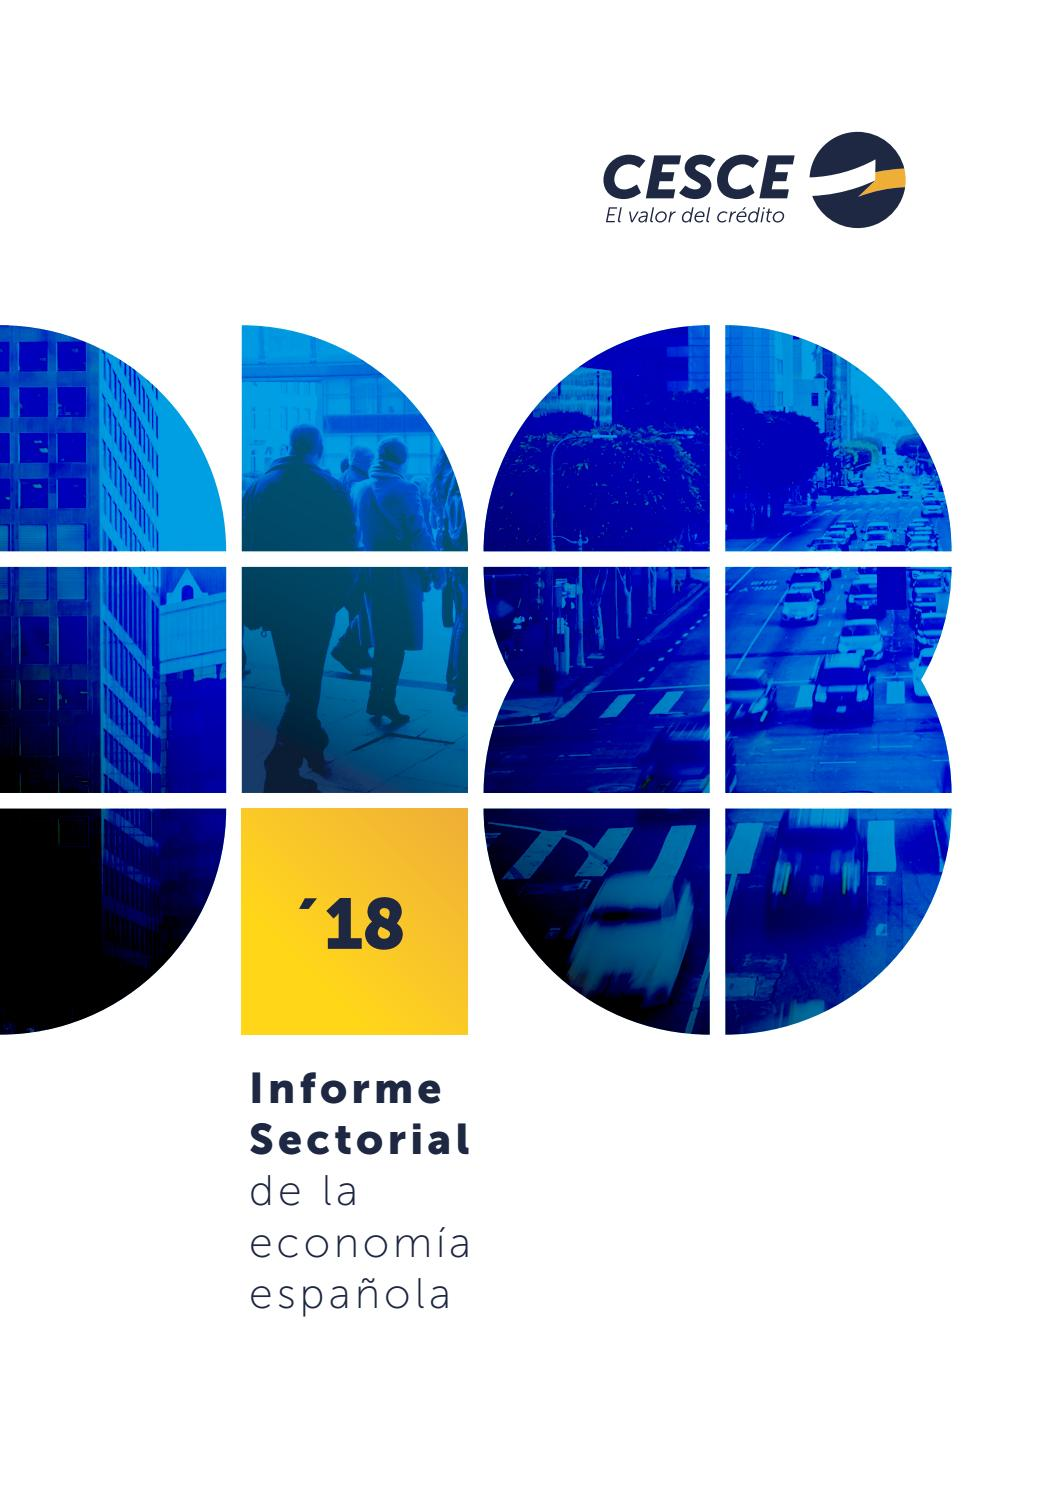 Informe Sectorial CESCE 2018 by CESCE issuu